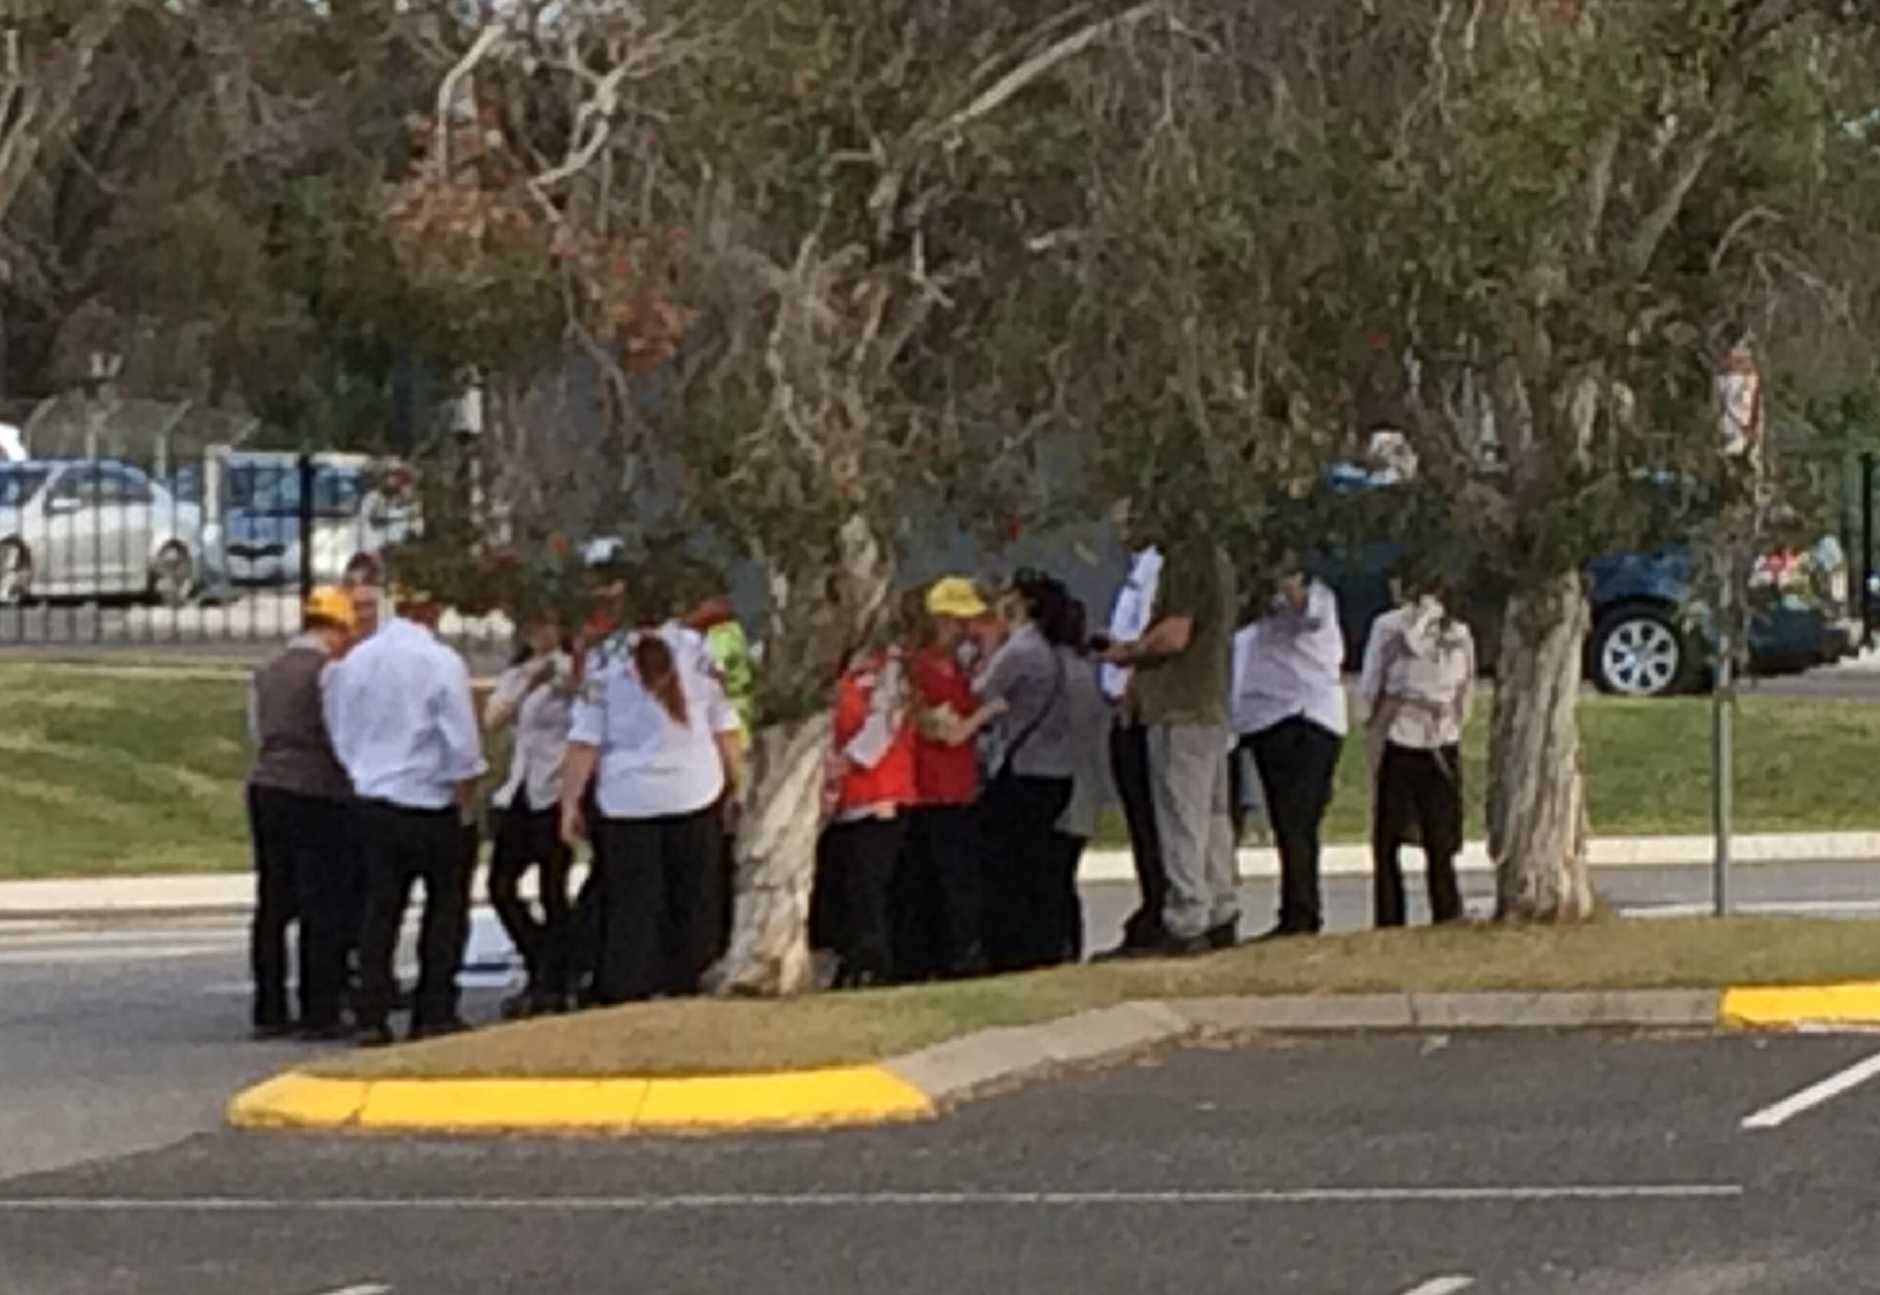 EVACUATED:Employees wait outside the stores while firefighters work to locate the source of a strong smell of smoke.